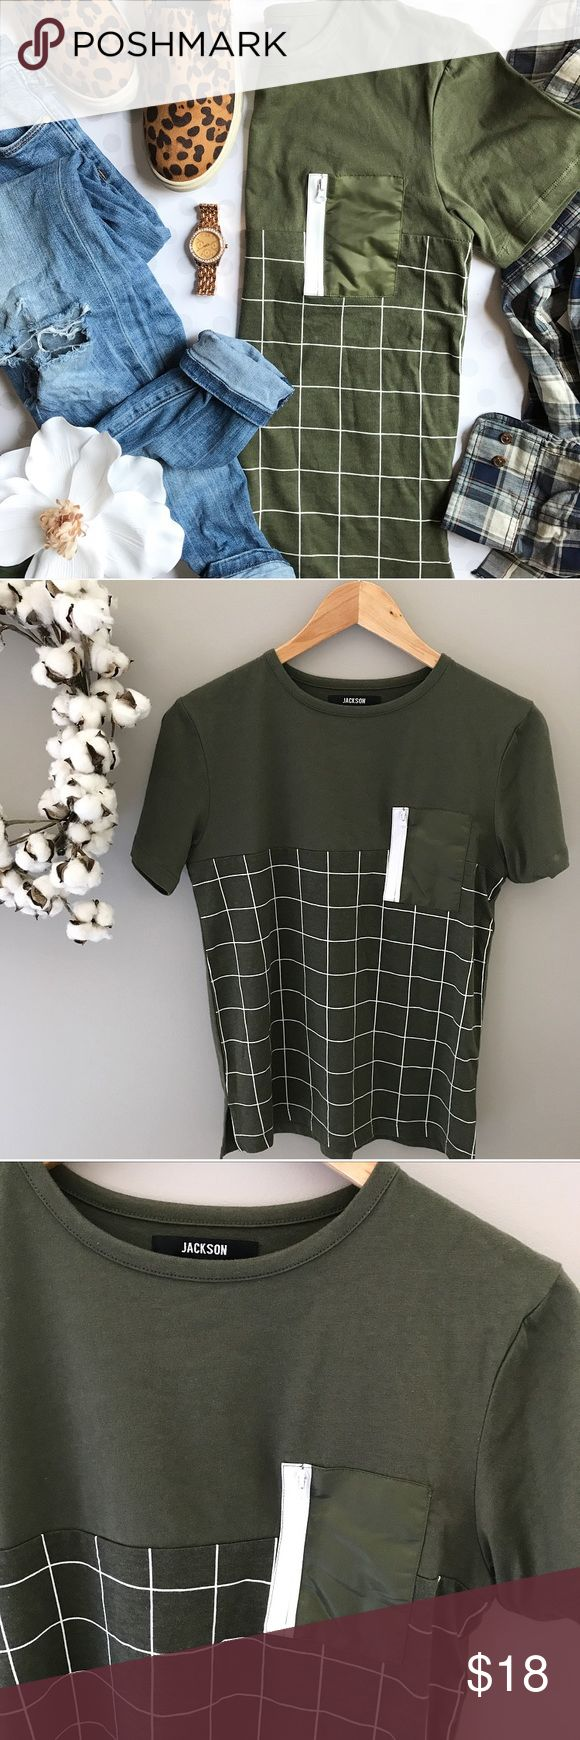 "🆕 NWOT Juniors Windowpane zipper pocket t-shirt NEW without tags -- olive is my new favorite neutral, especially when paired with the windowpane print on this fun t-shirt by Jackson. White accent pocket with zipper adds additional interest. It isn't labeled Juniors anywhere, but because of the measurements I have marked it as such. Would fit ""women's"" XS or S as well. 34"" bust, 24"" length. 100% cotton jackson Tops Tees - Short Sleeve"